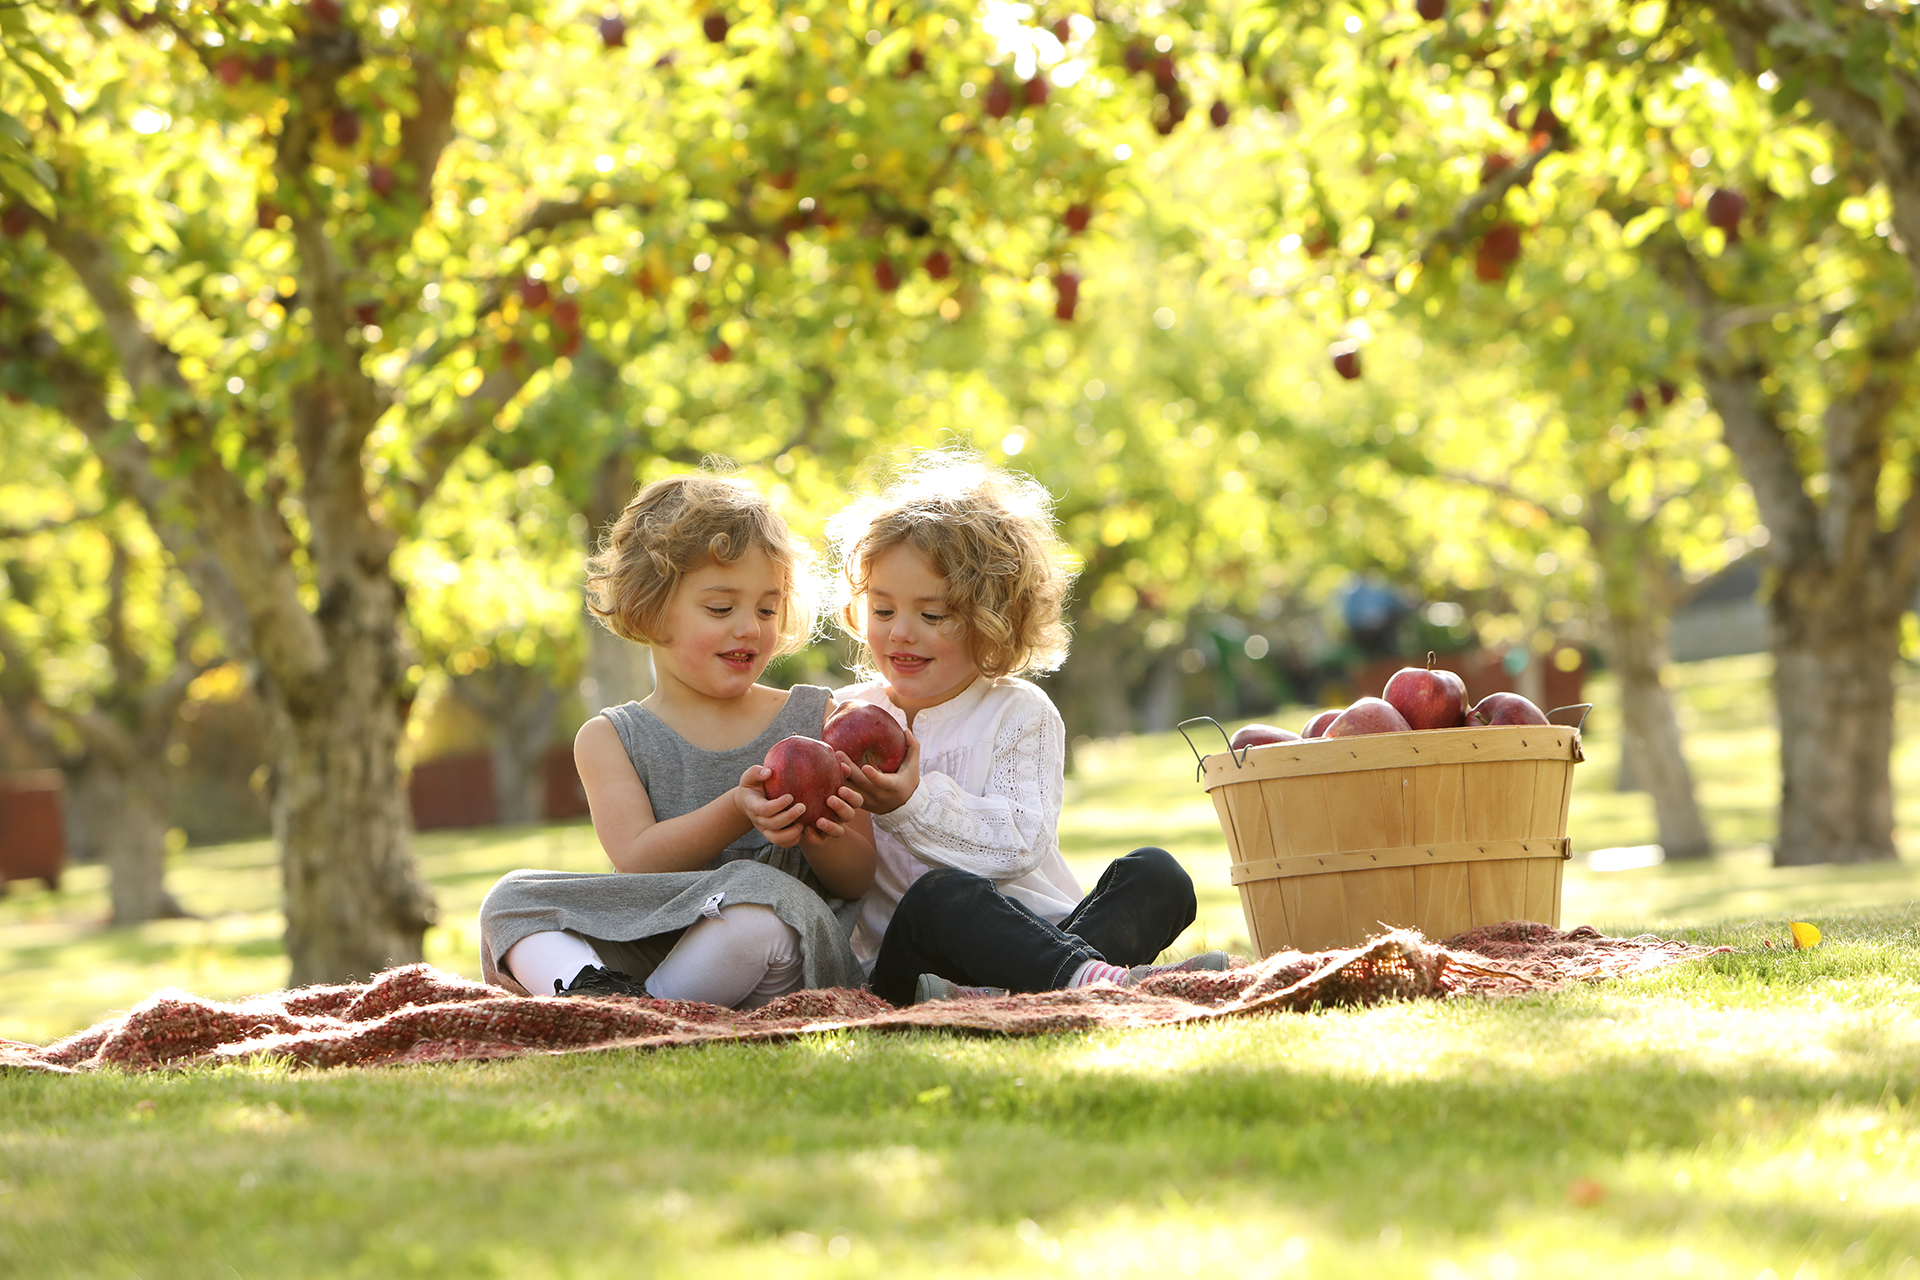 Curly blond haired girls sitting on a blanket with apples in the orchard sun